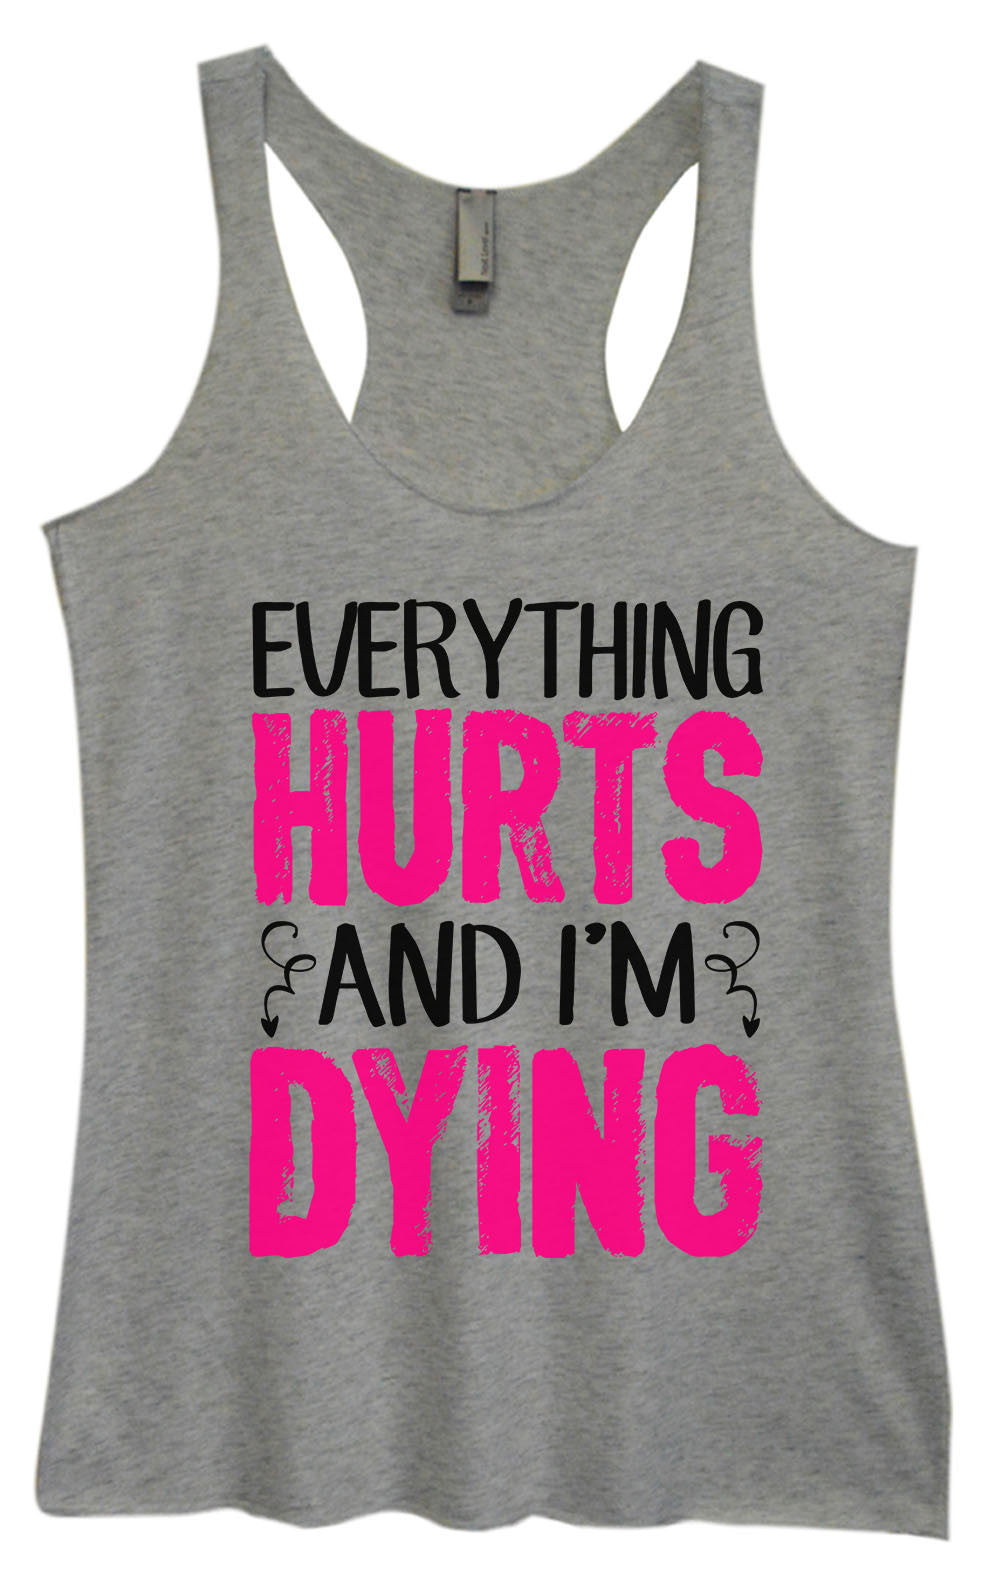 Womens Fashion Triblend Tank Top - Everything Hurts And I'm Dying - Tri-1431 - Funny Shirts Tank Tops Burnouts and Triblends  - 2